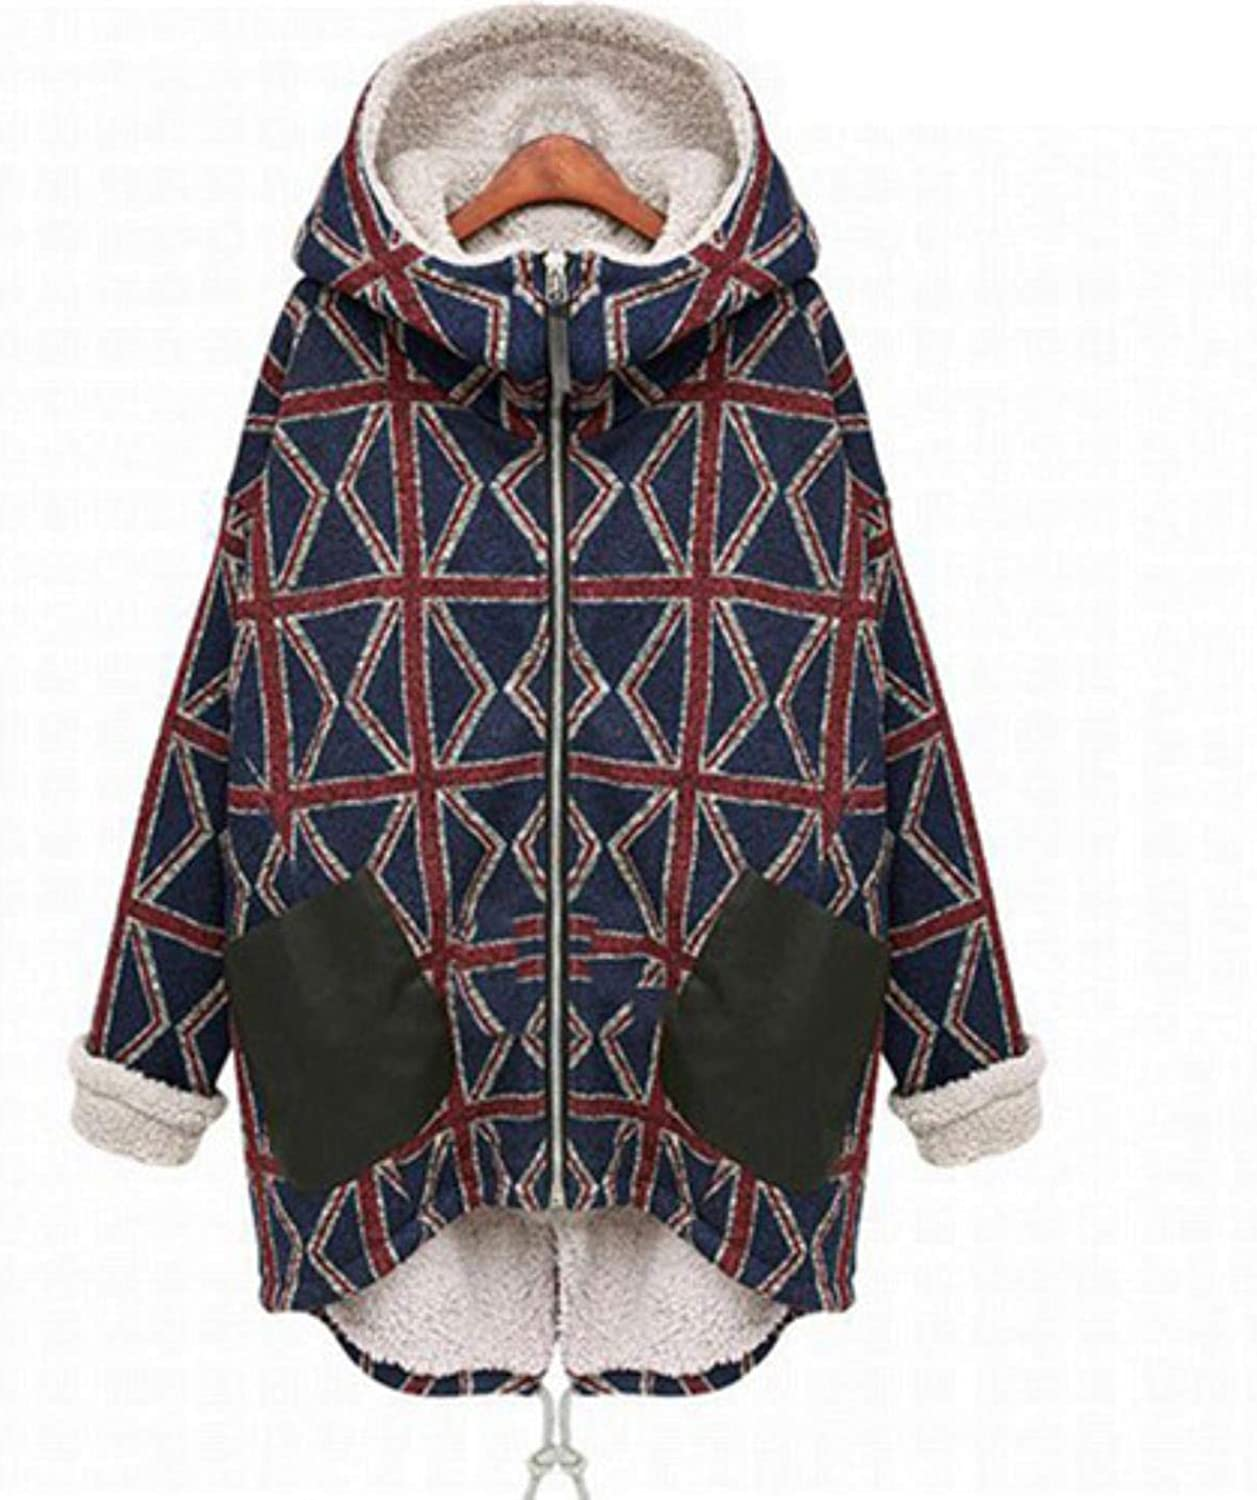 CHANGYUGE Women Winter Padded Cotton Print Hooded Causal Jacket Coat